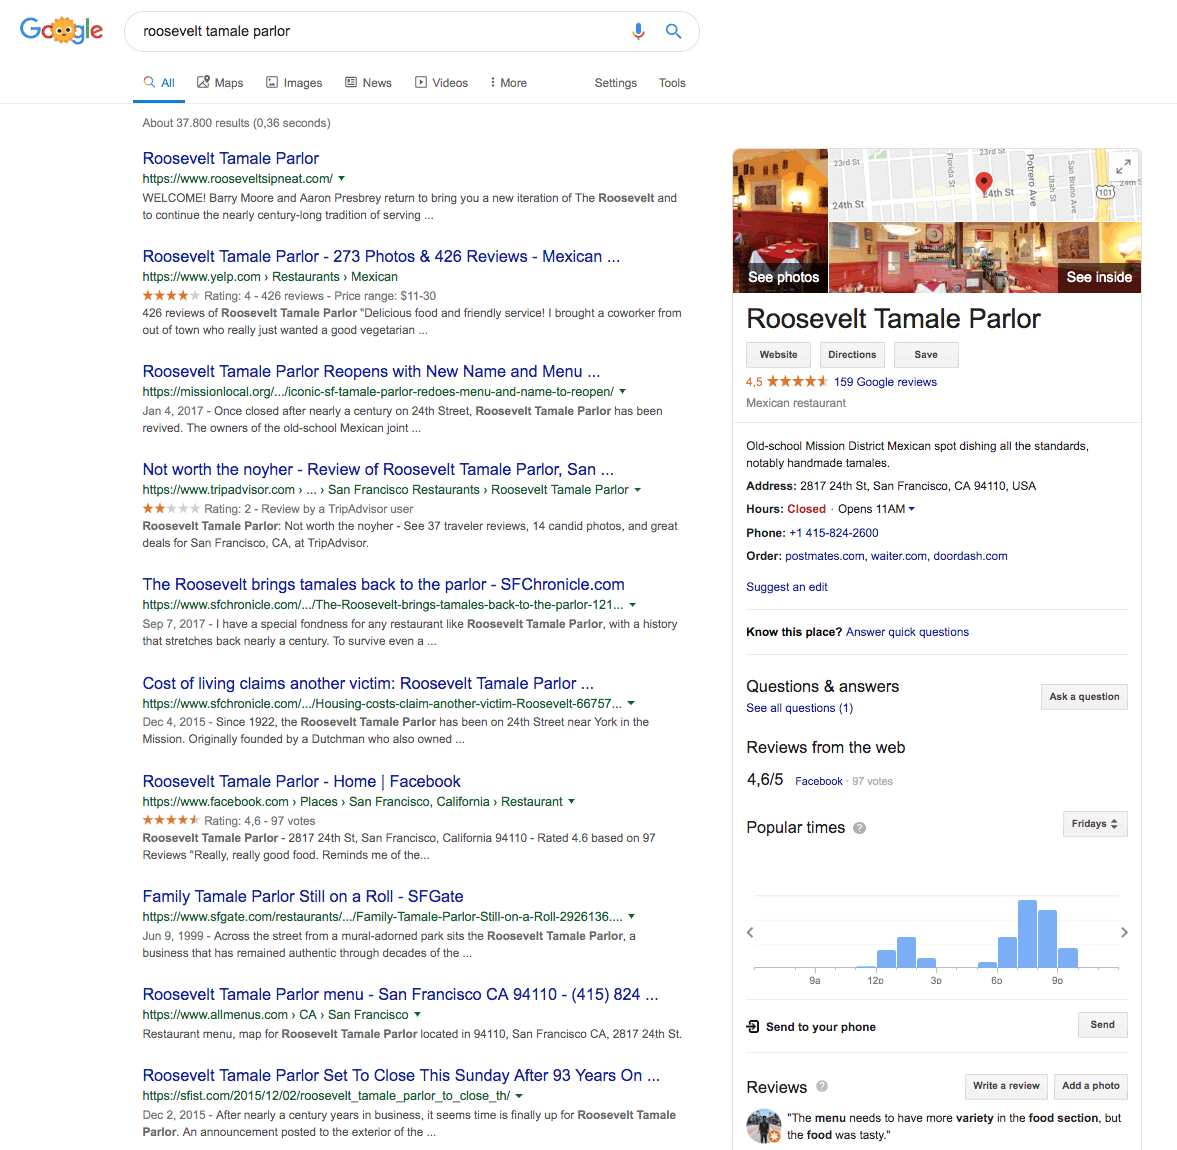 Google My Business listing and knowledge graph